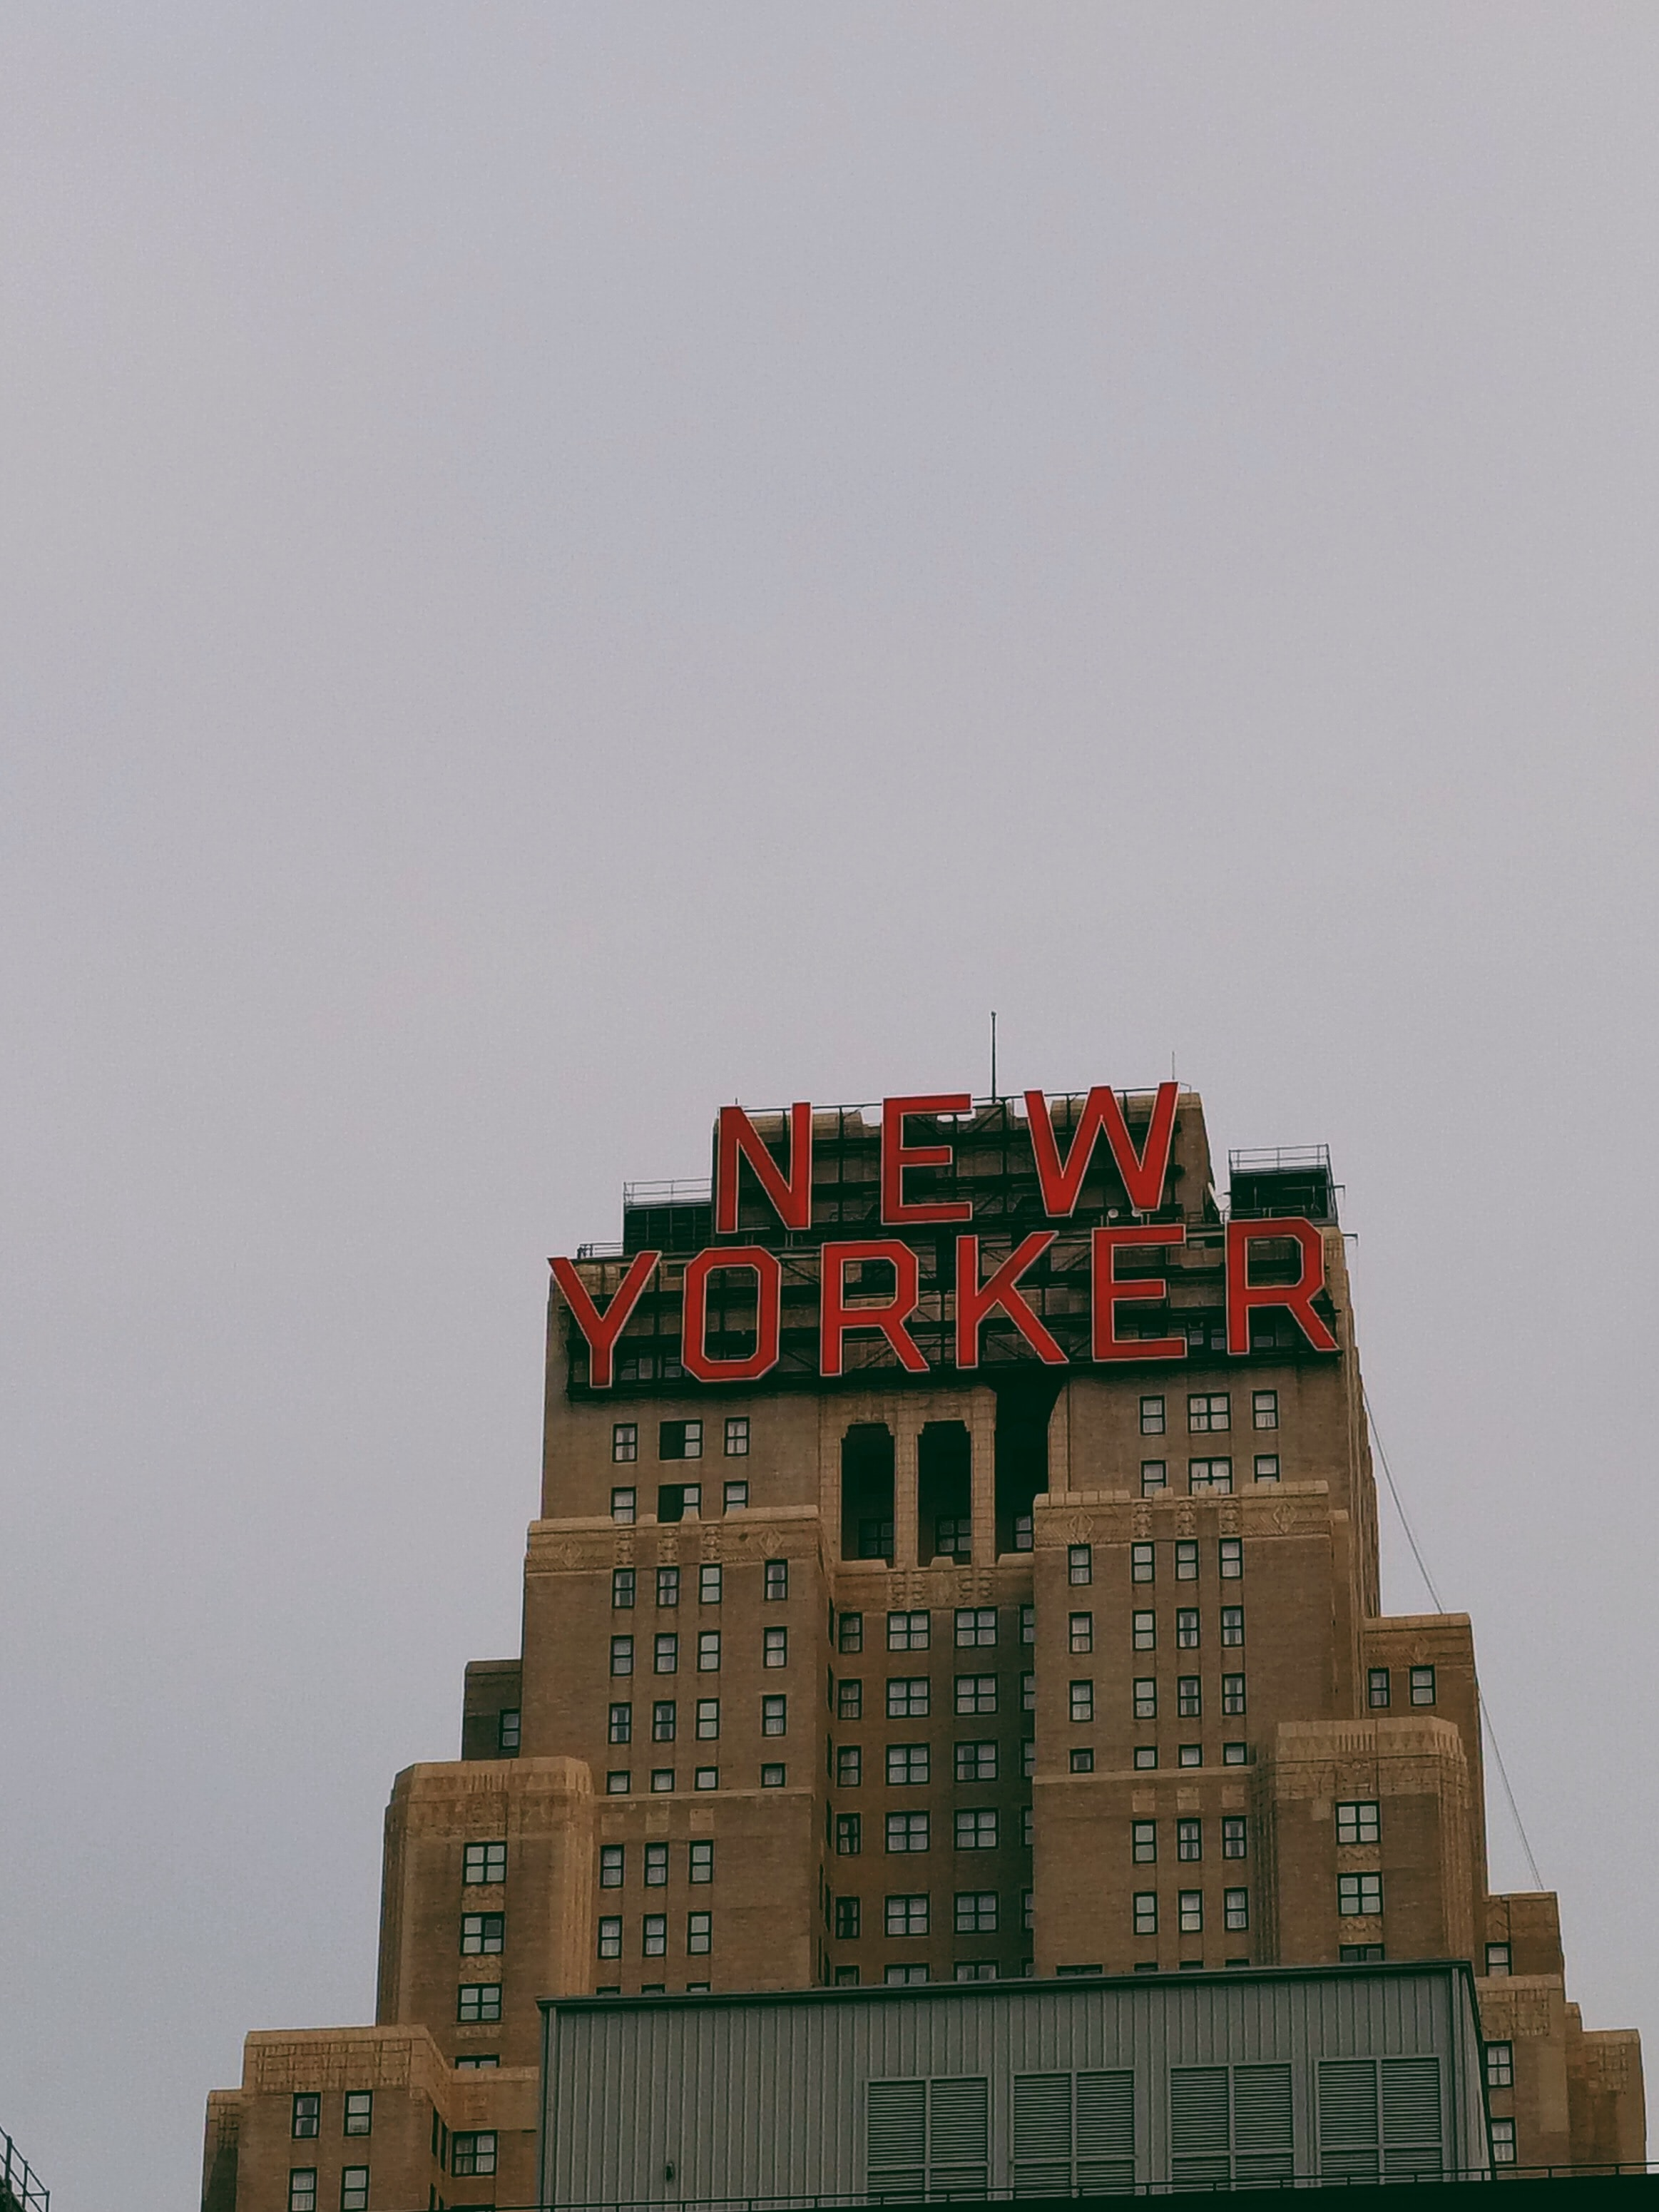 The New Yorker building, a Wyndham hotel.